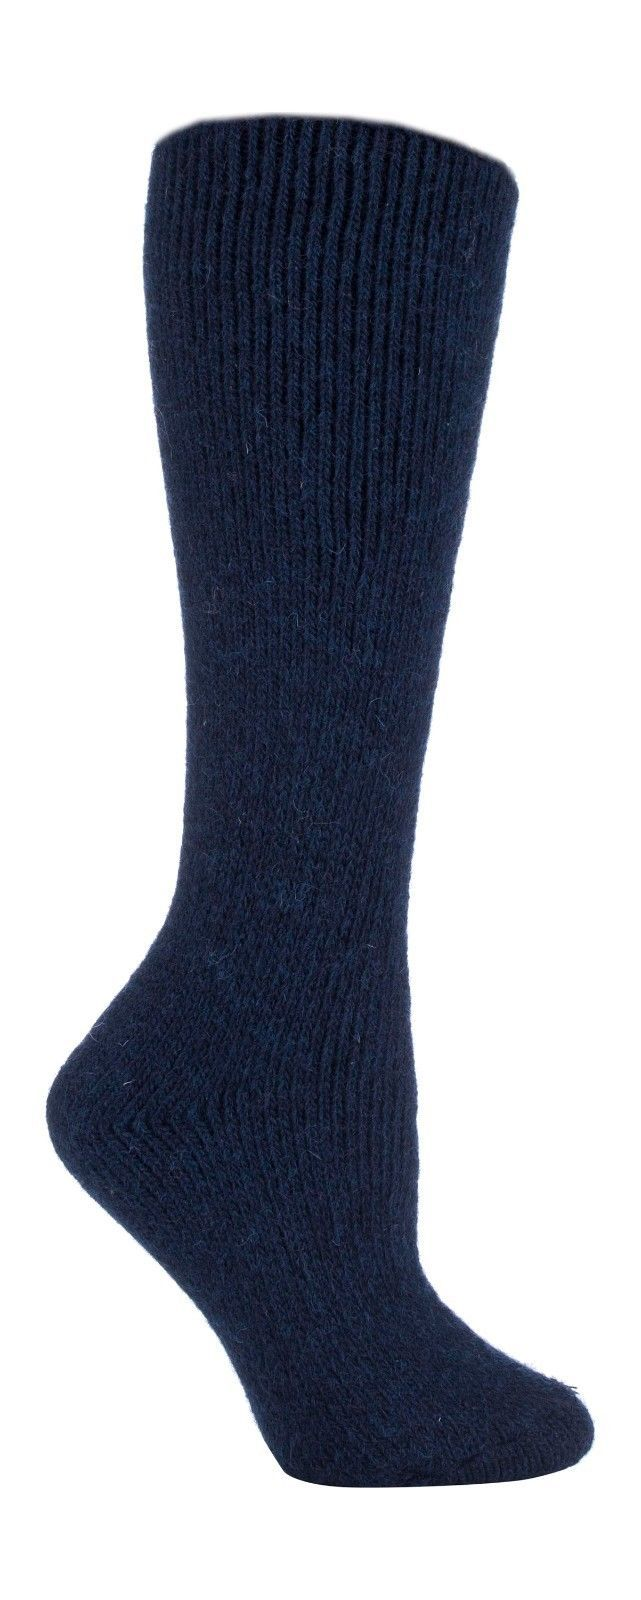 Heat Holders - Womens Thick Winter LONG Wool Knee High Thermal Socks 6 Colors